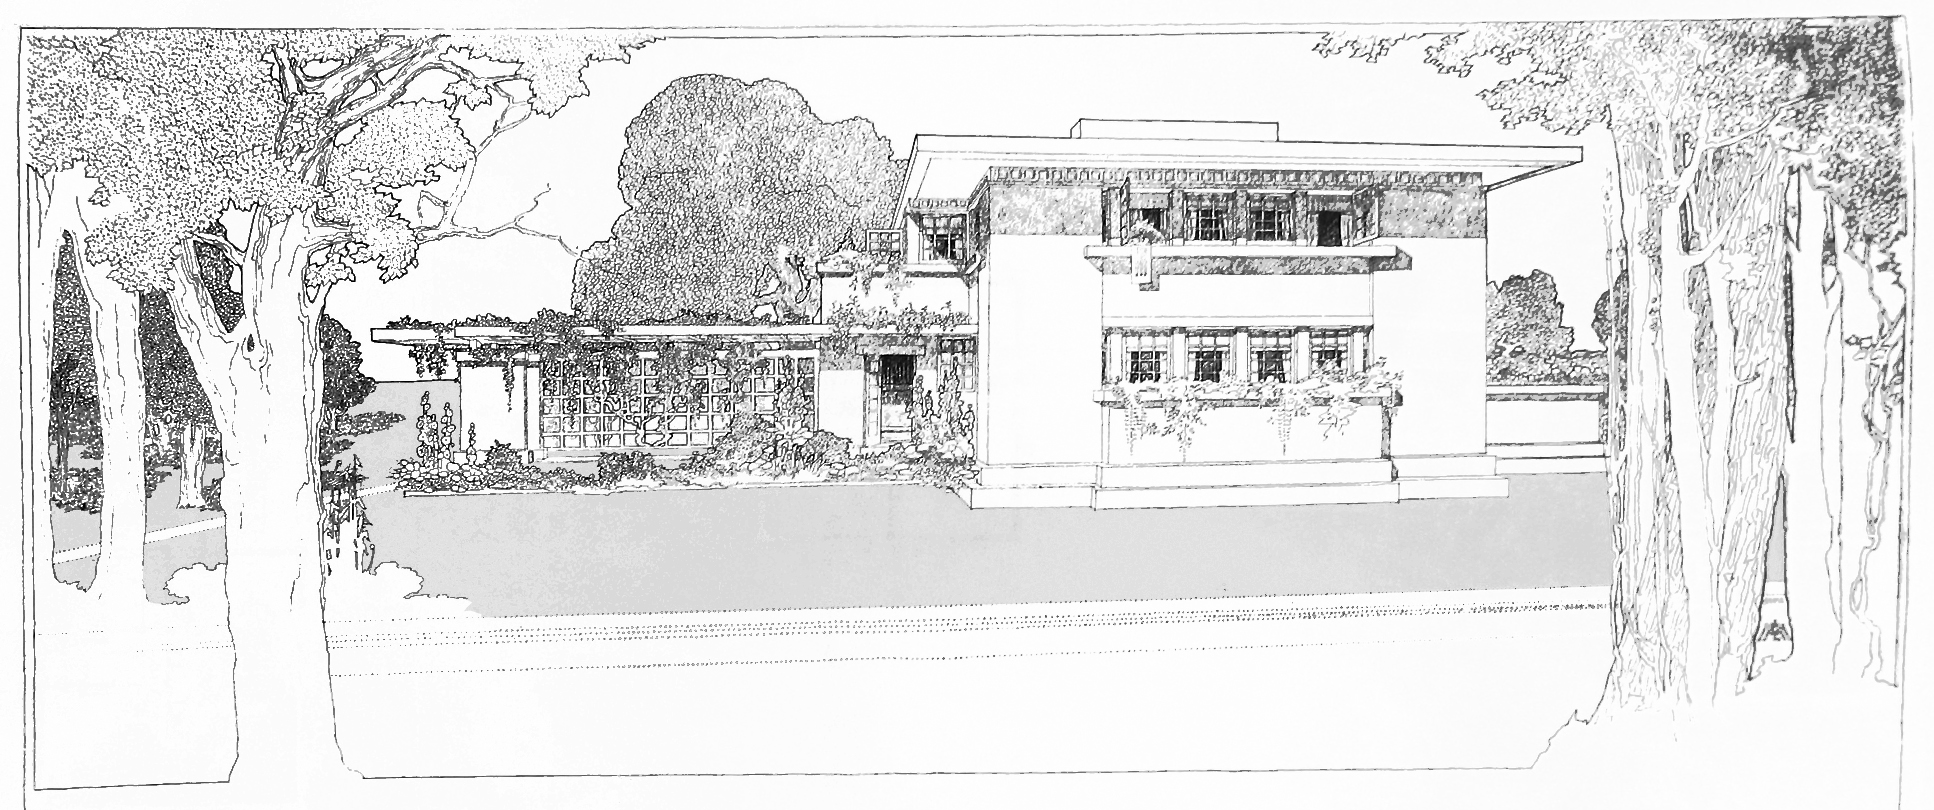 Frank Lloyd Wright Style House Plans File Fireproof House 2 Jpg Wikipedia